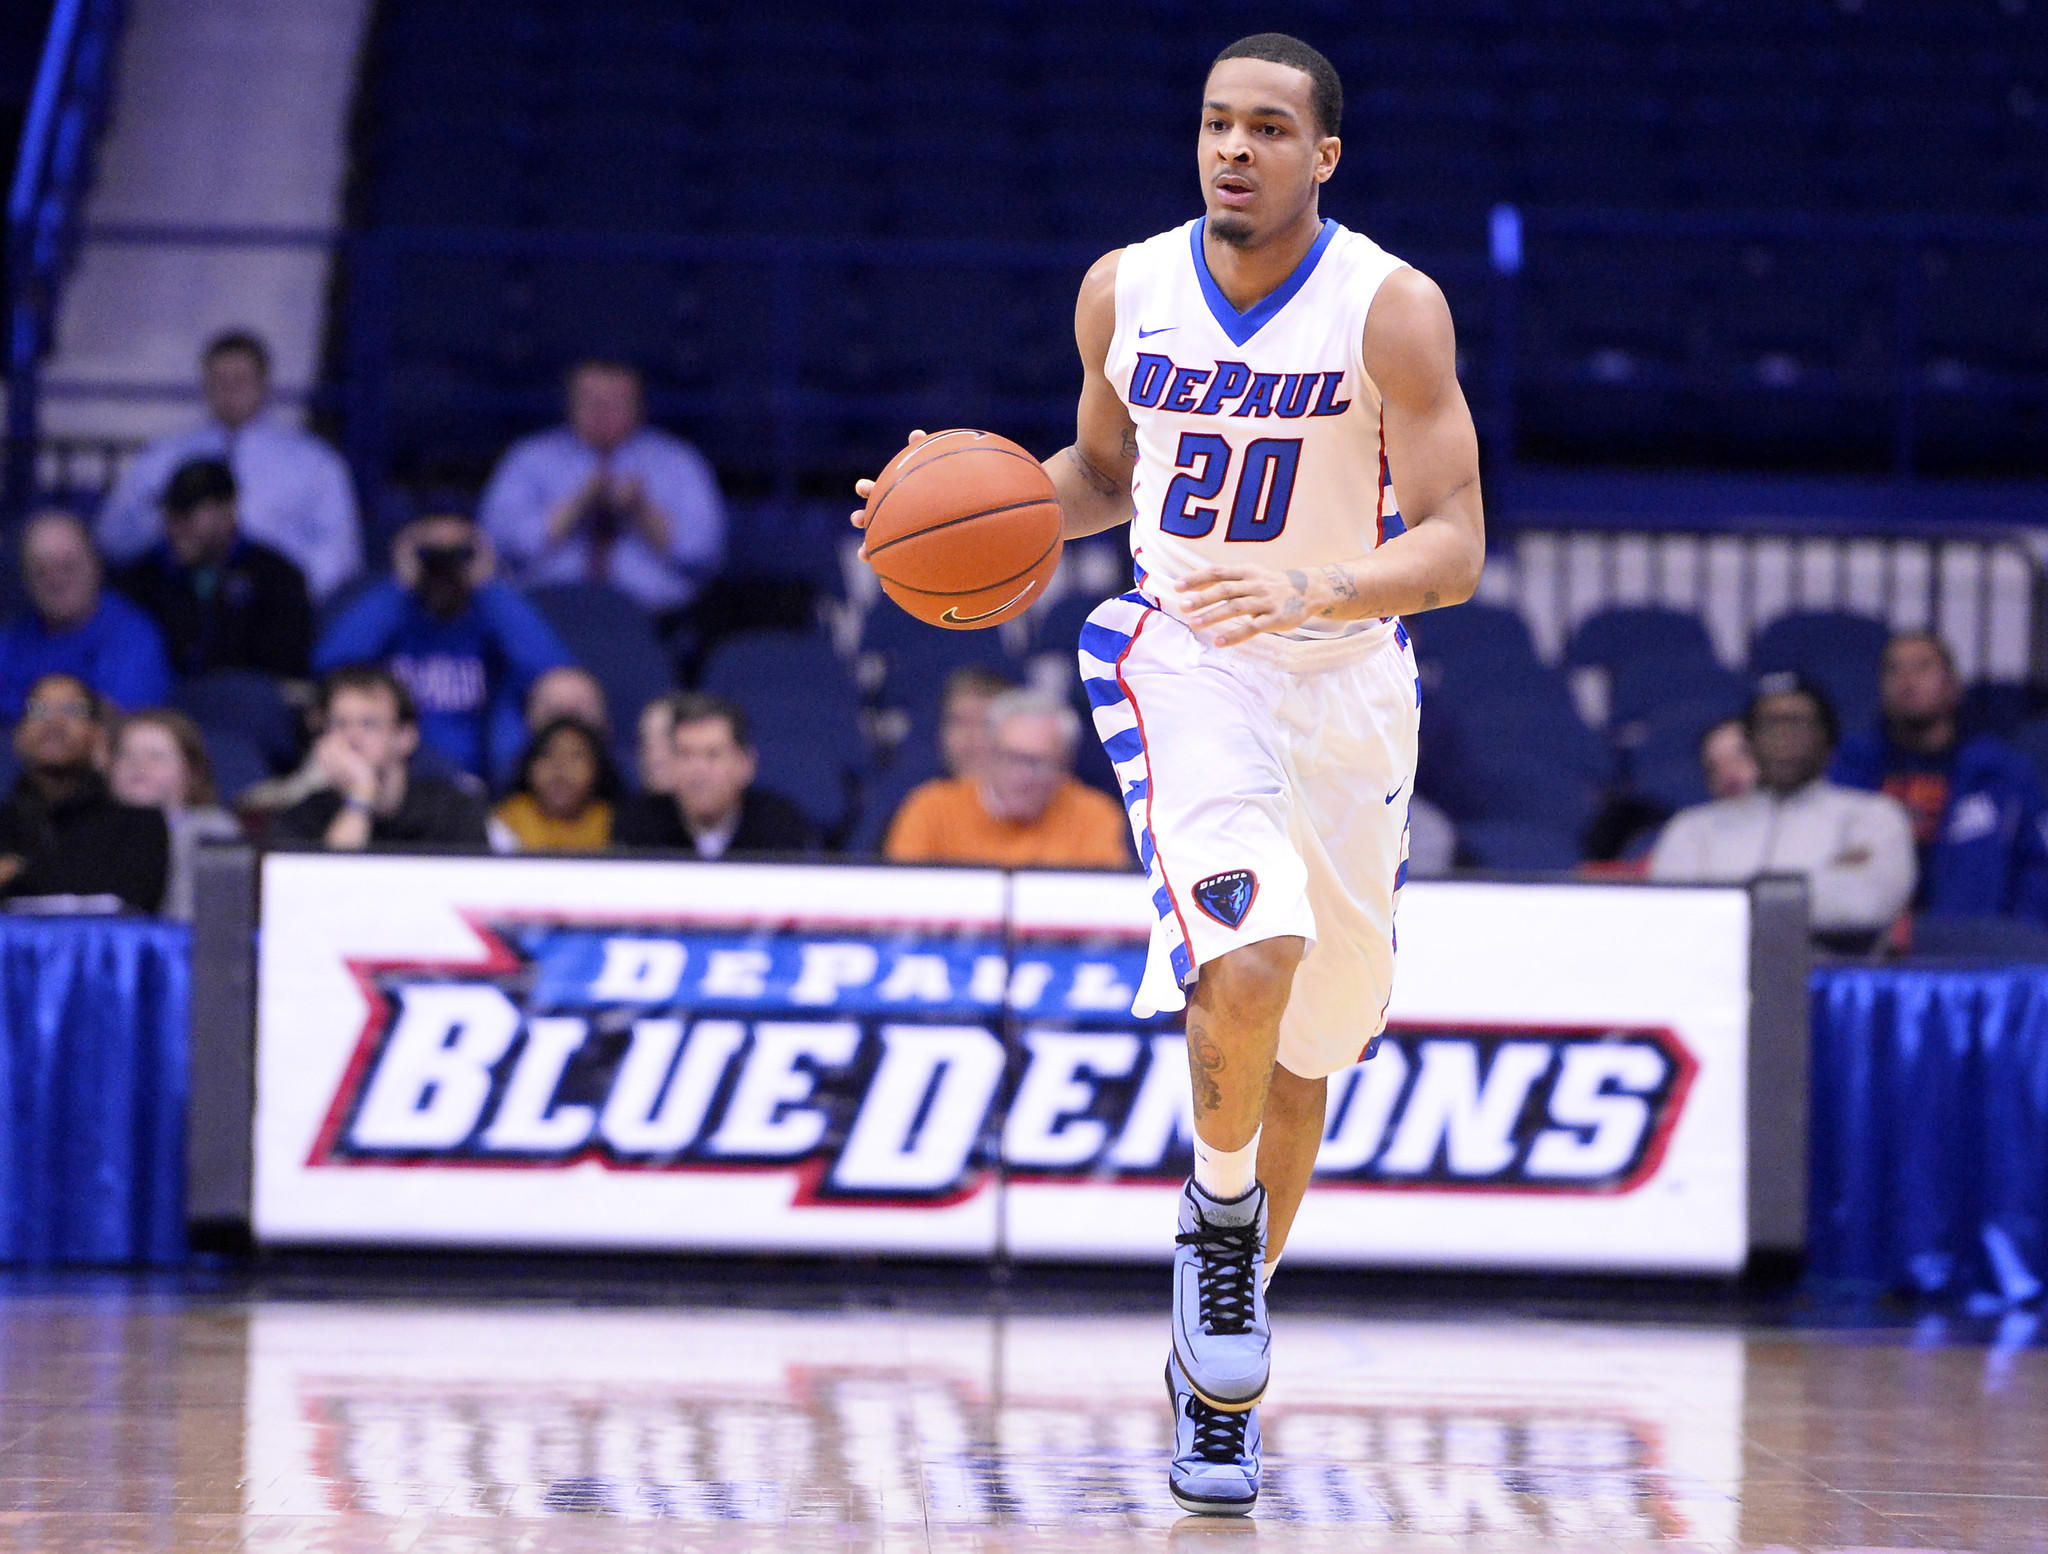 DePaul's Brandon Young dribbles the ball against Georgetown during the first half.